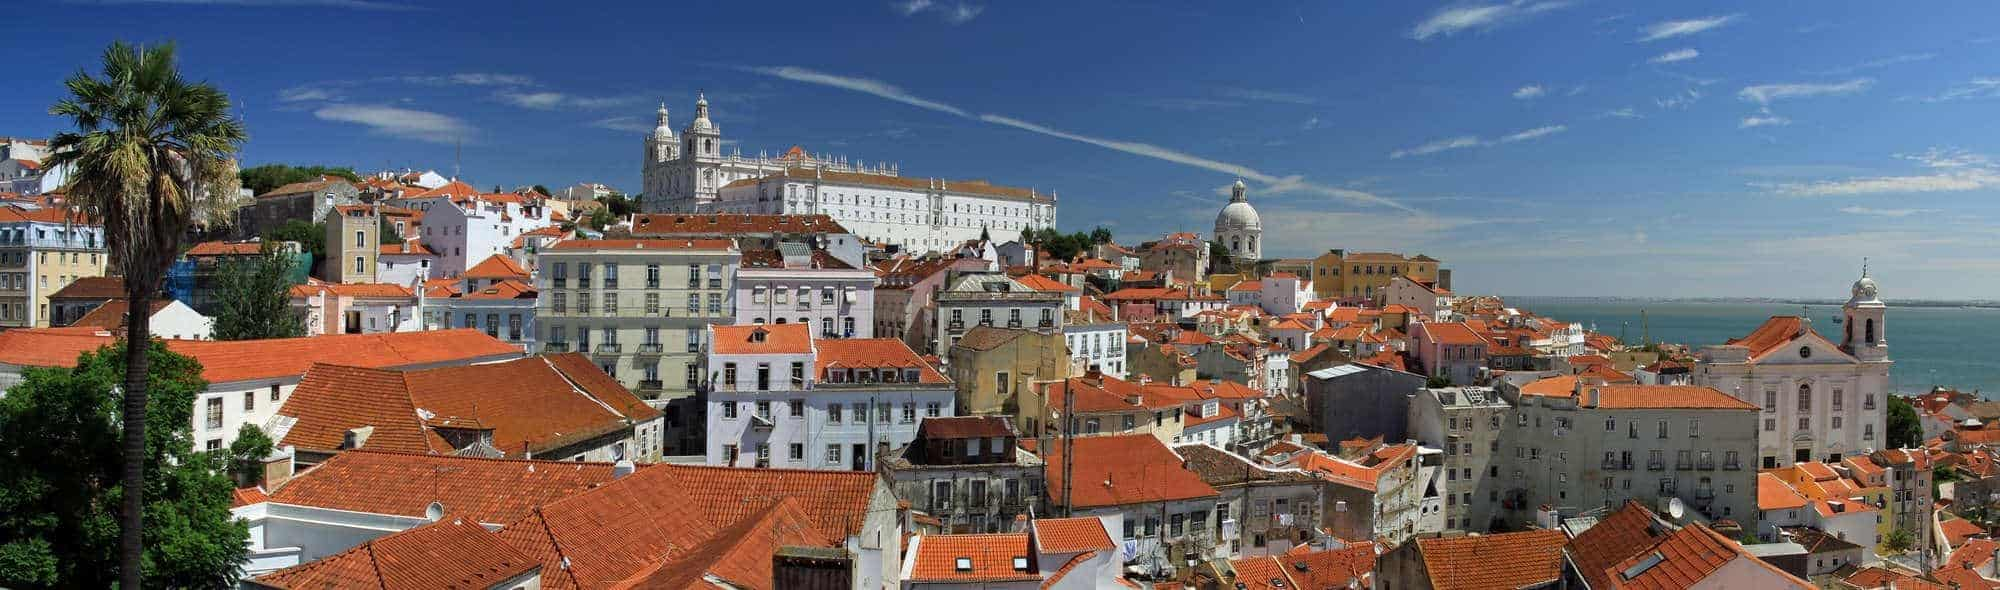 Alfama - the old quarter of Lisbon (Portugal)